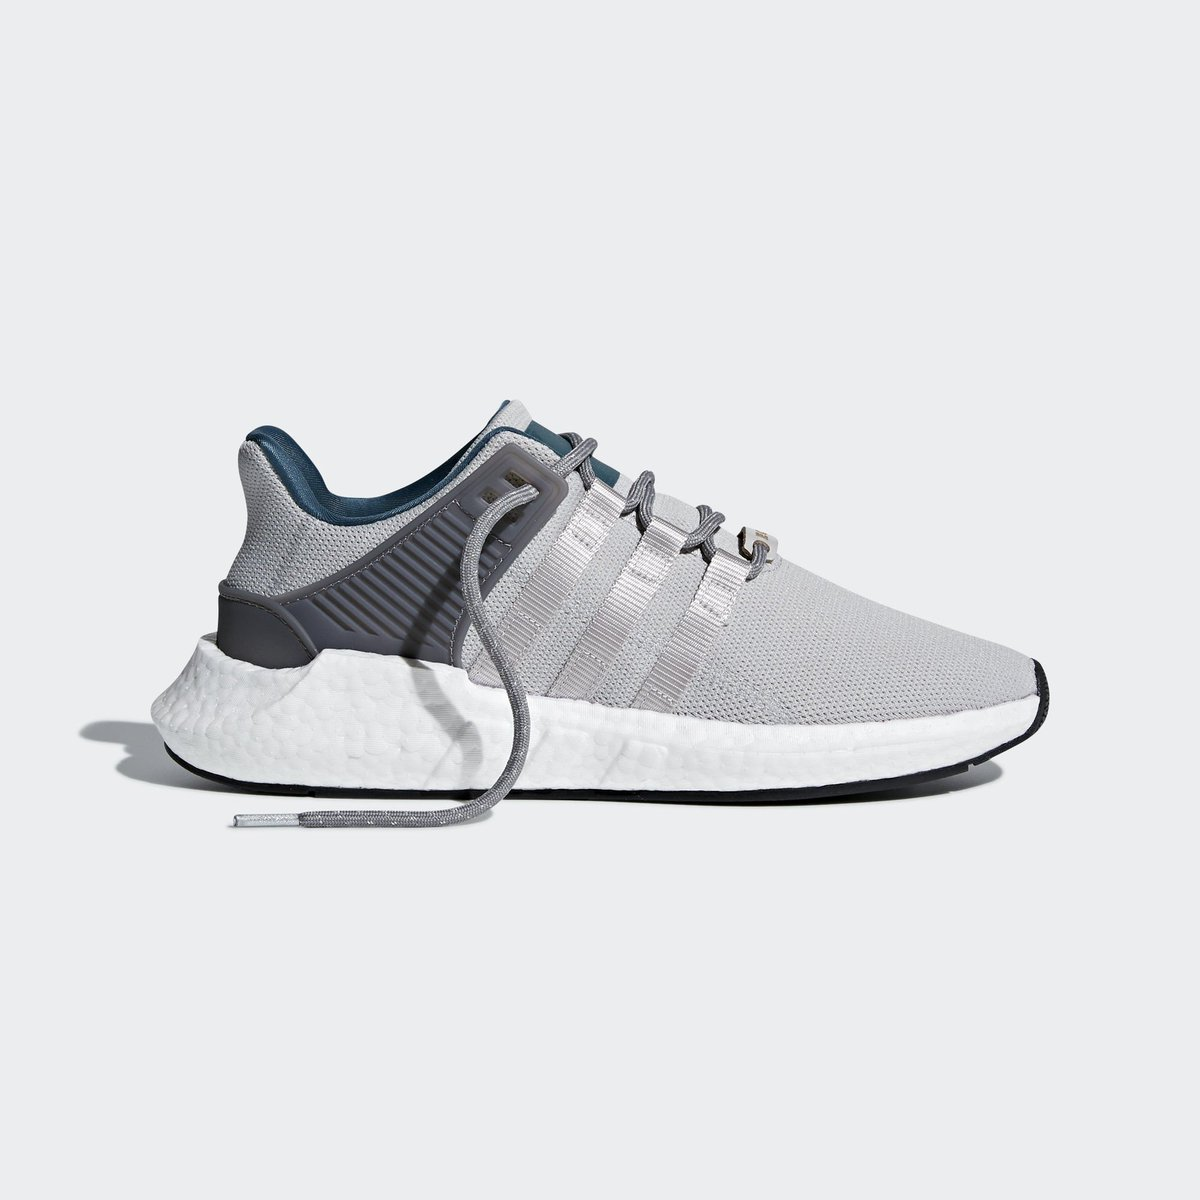 nmd adidas us mens adidas ultra boost shoes